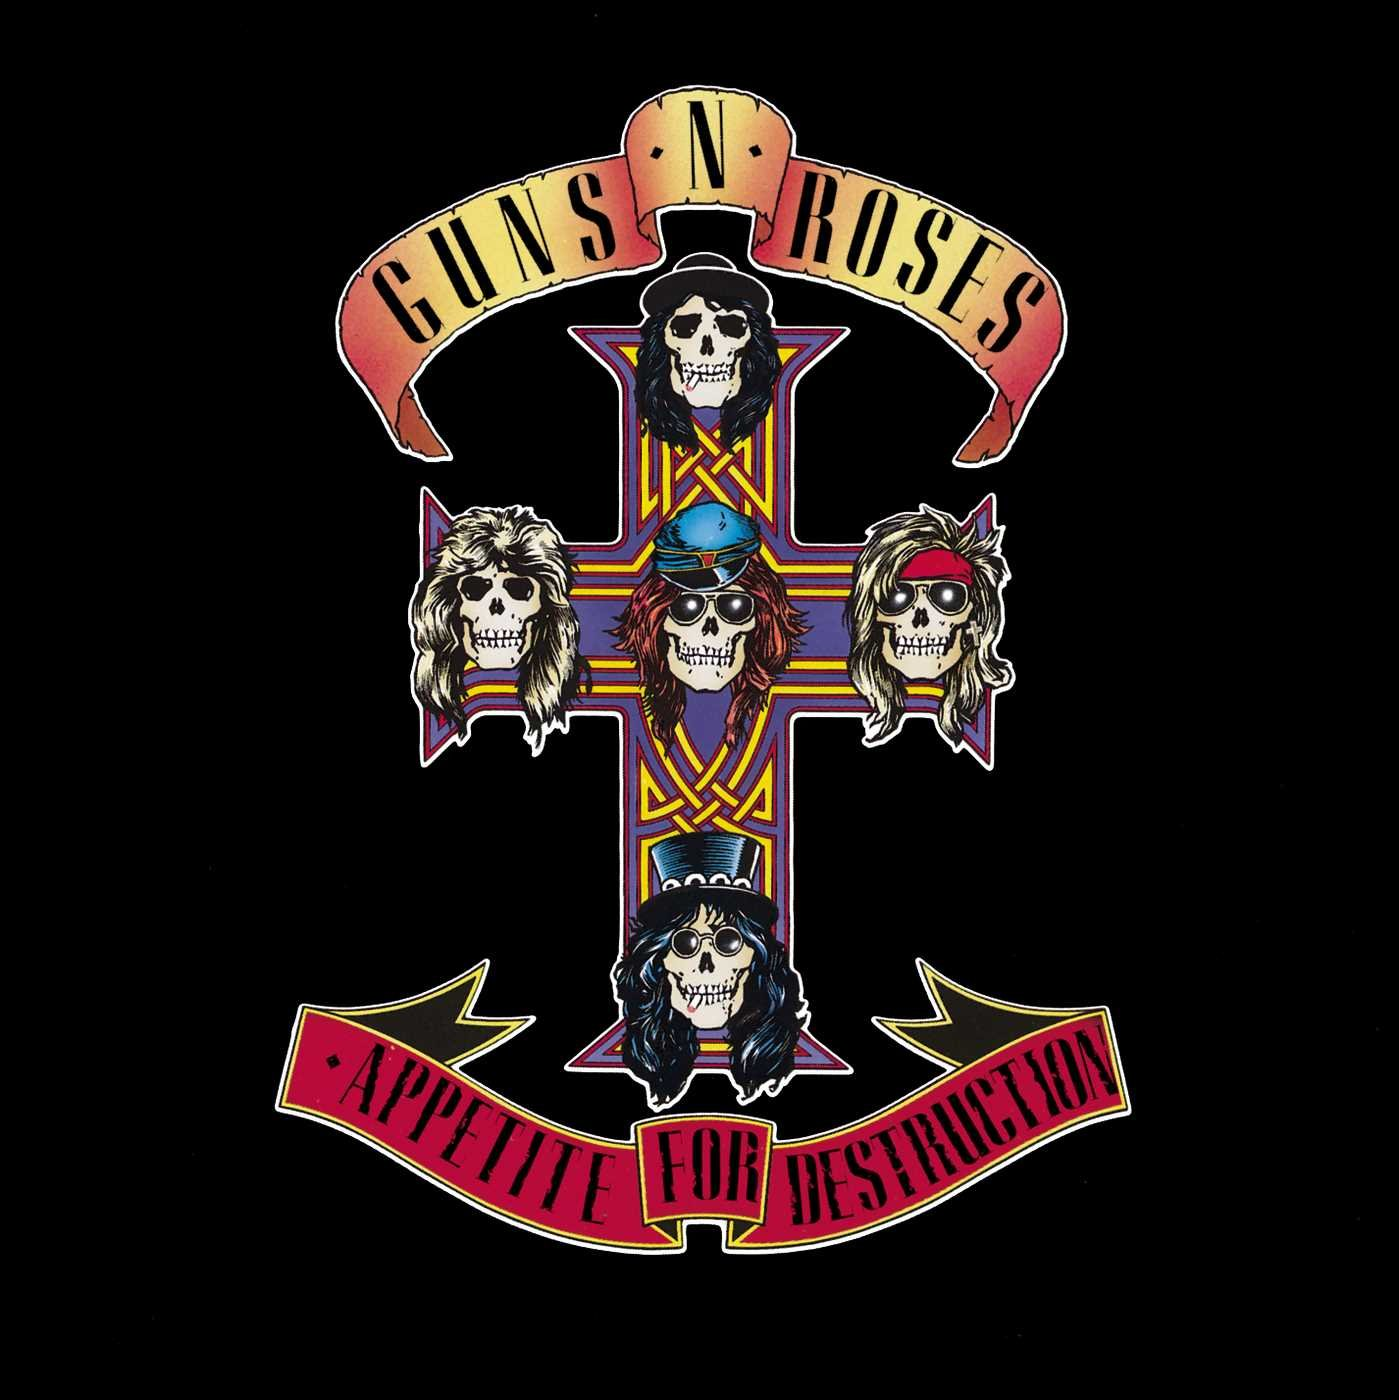 50 Years, 50 Albums 1987: Guns 'N Roses 'Appetite for Destruction'